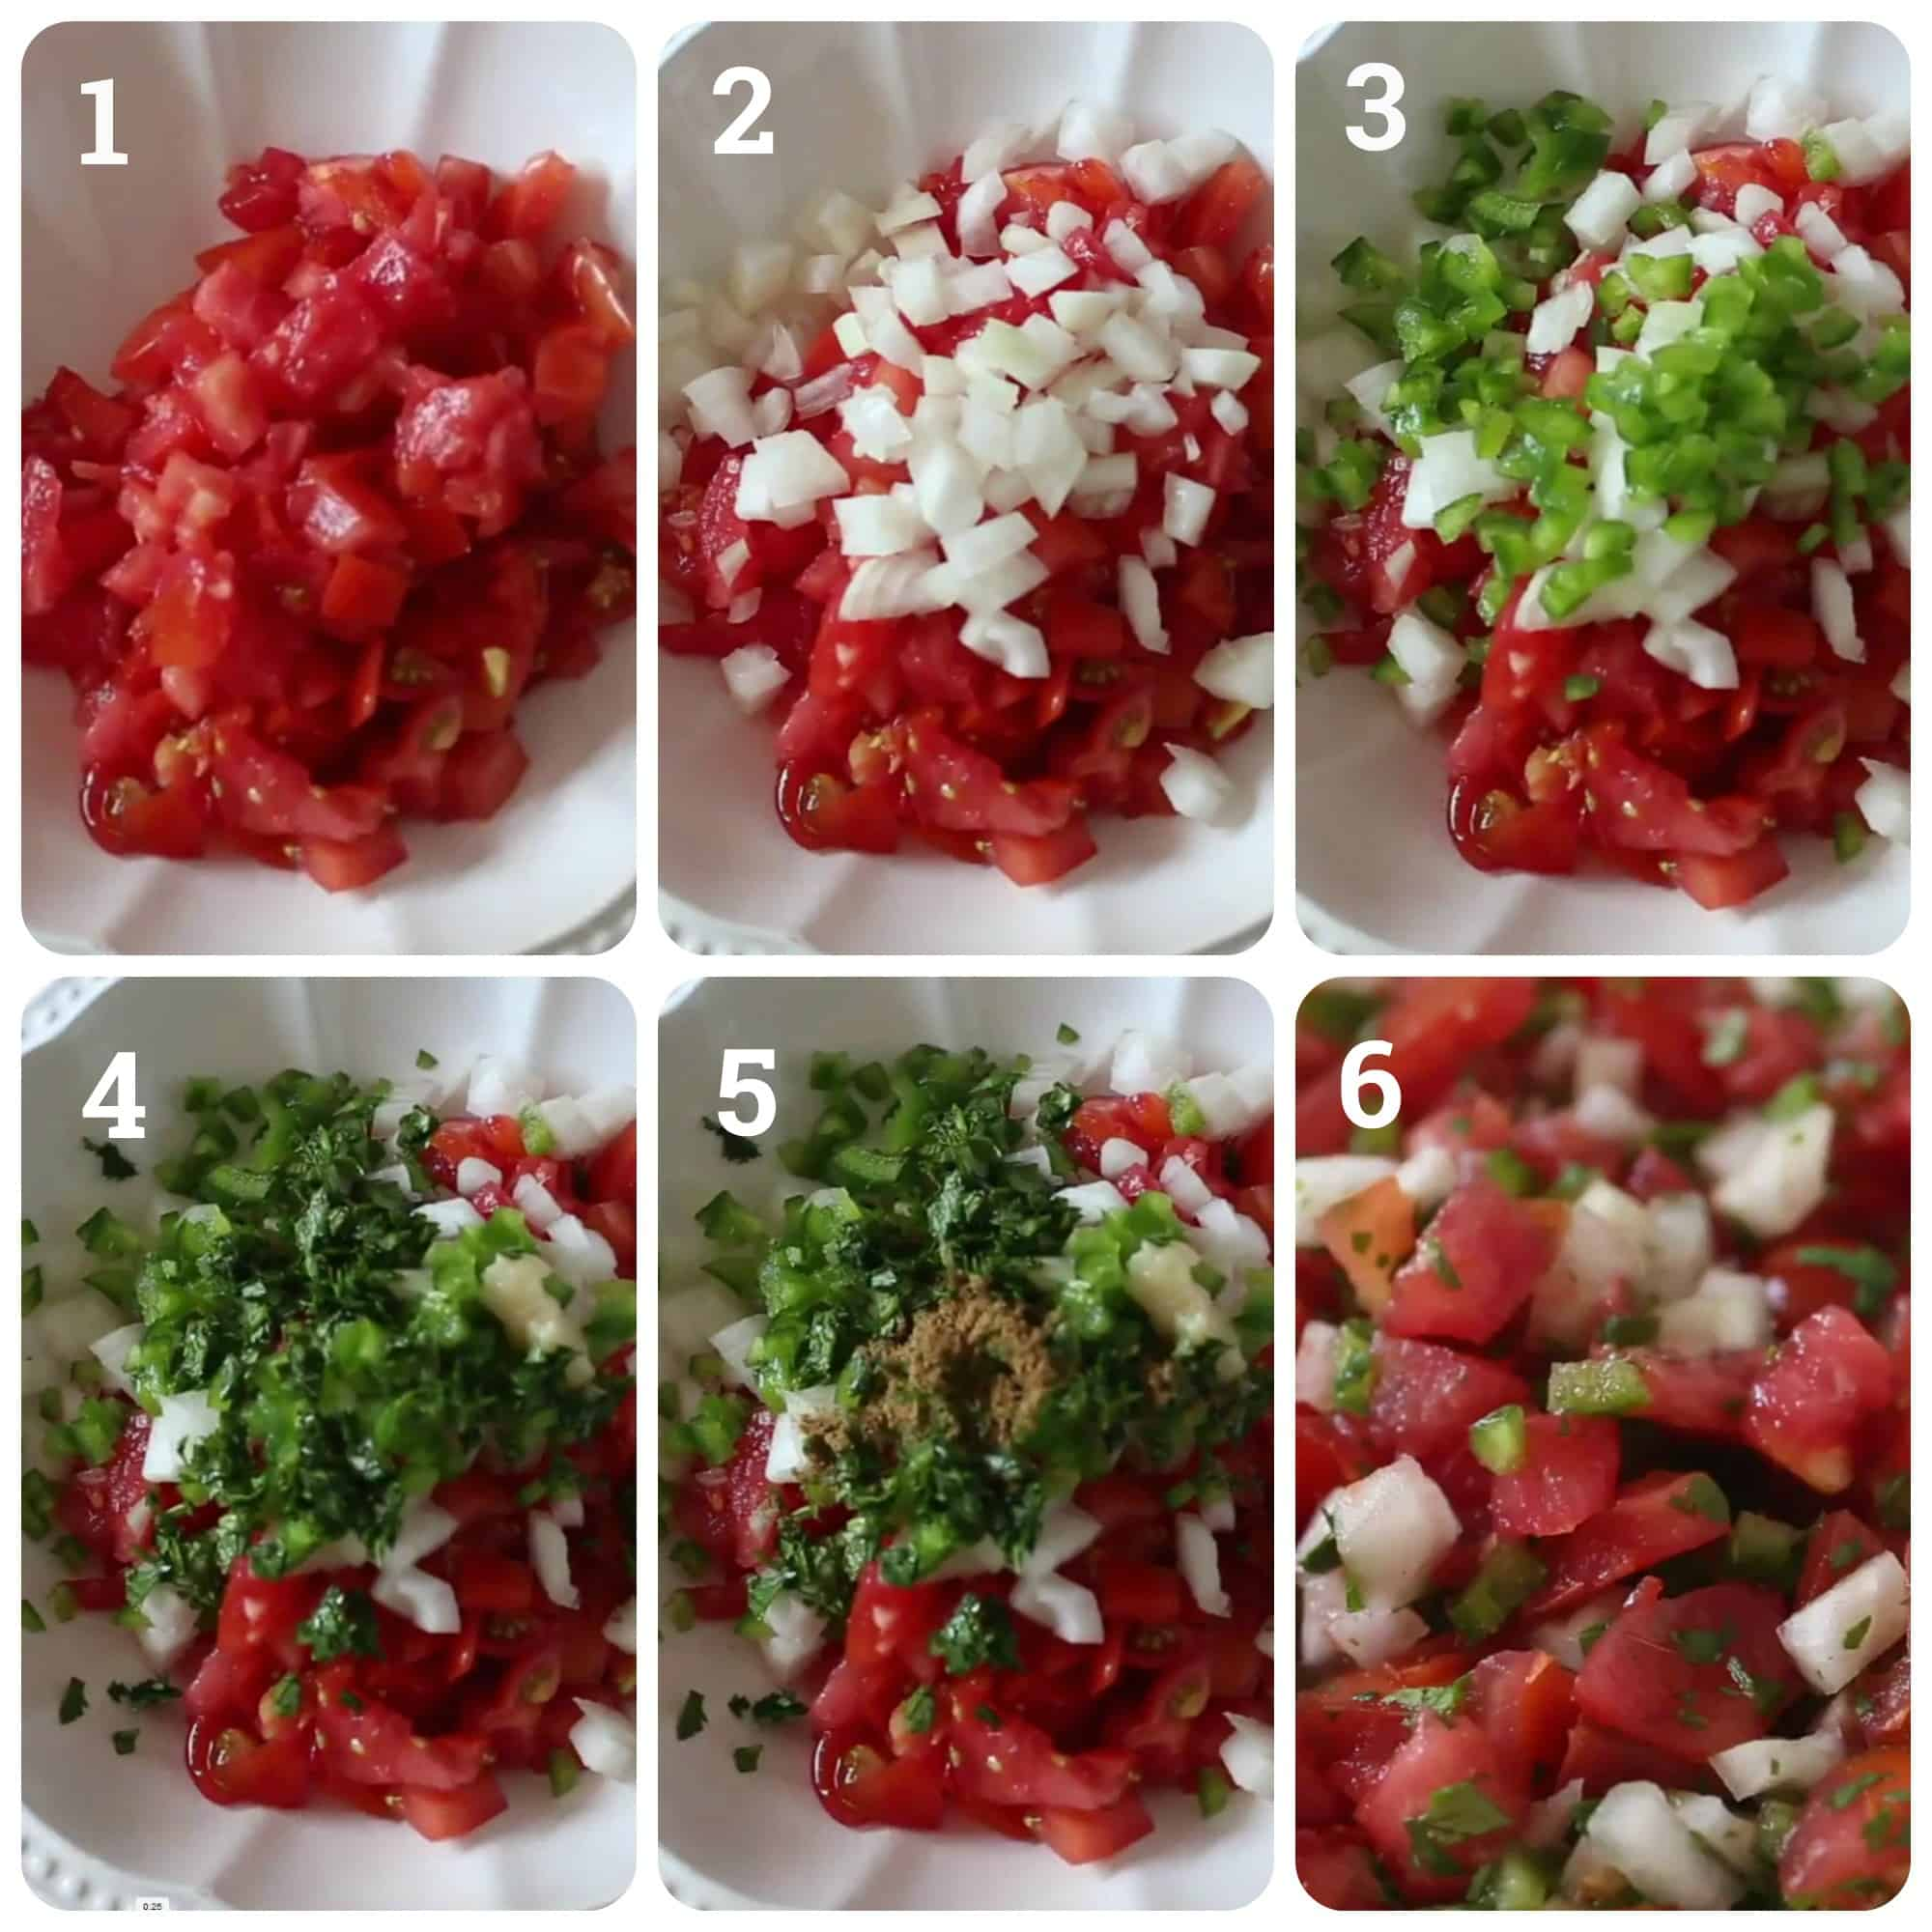 Step by step photos of making pico de gallo salsa